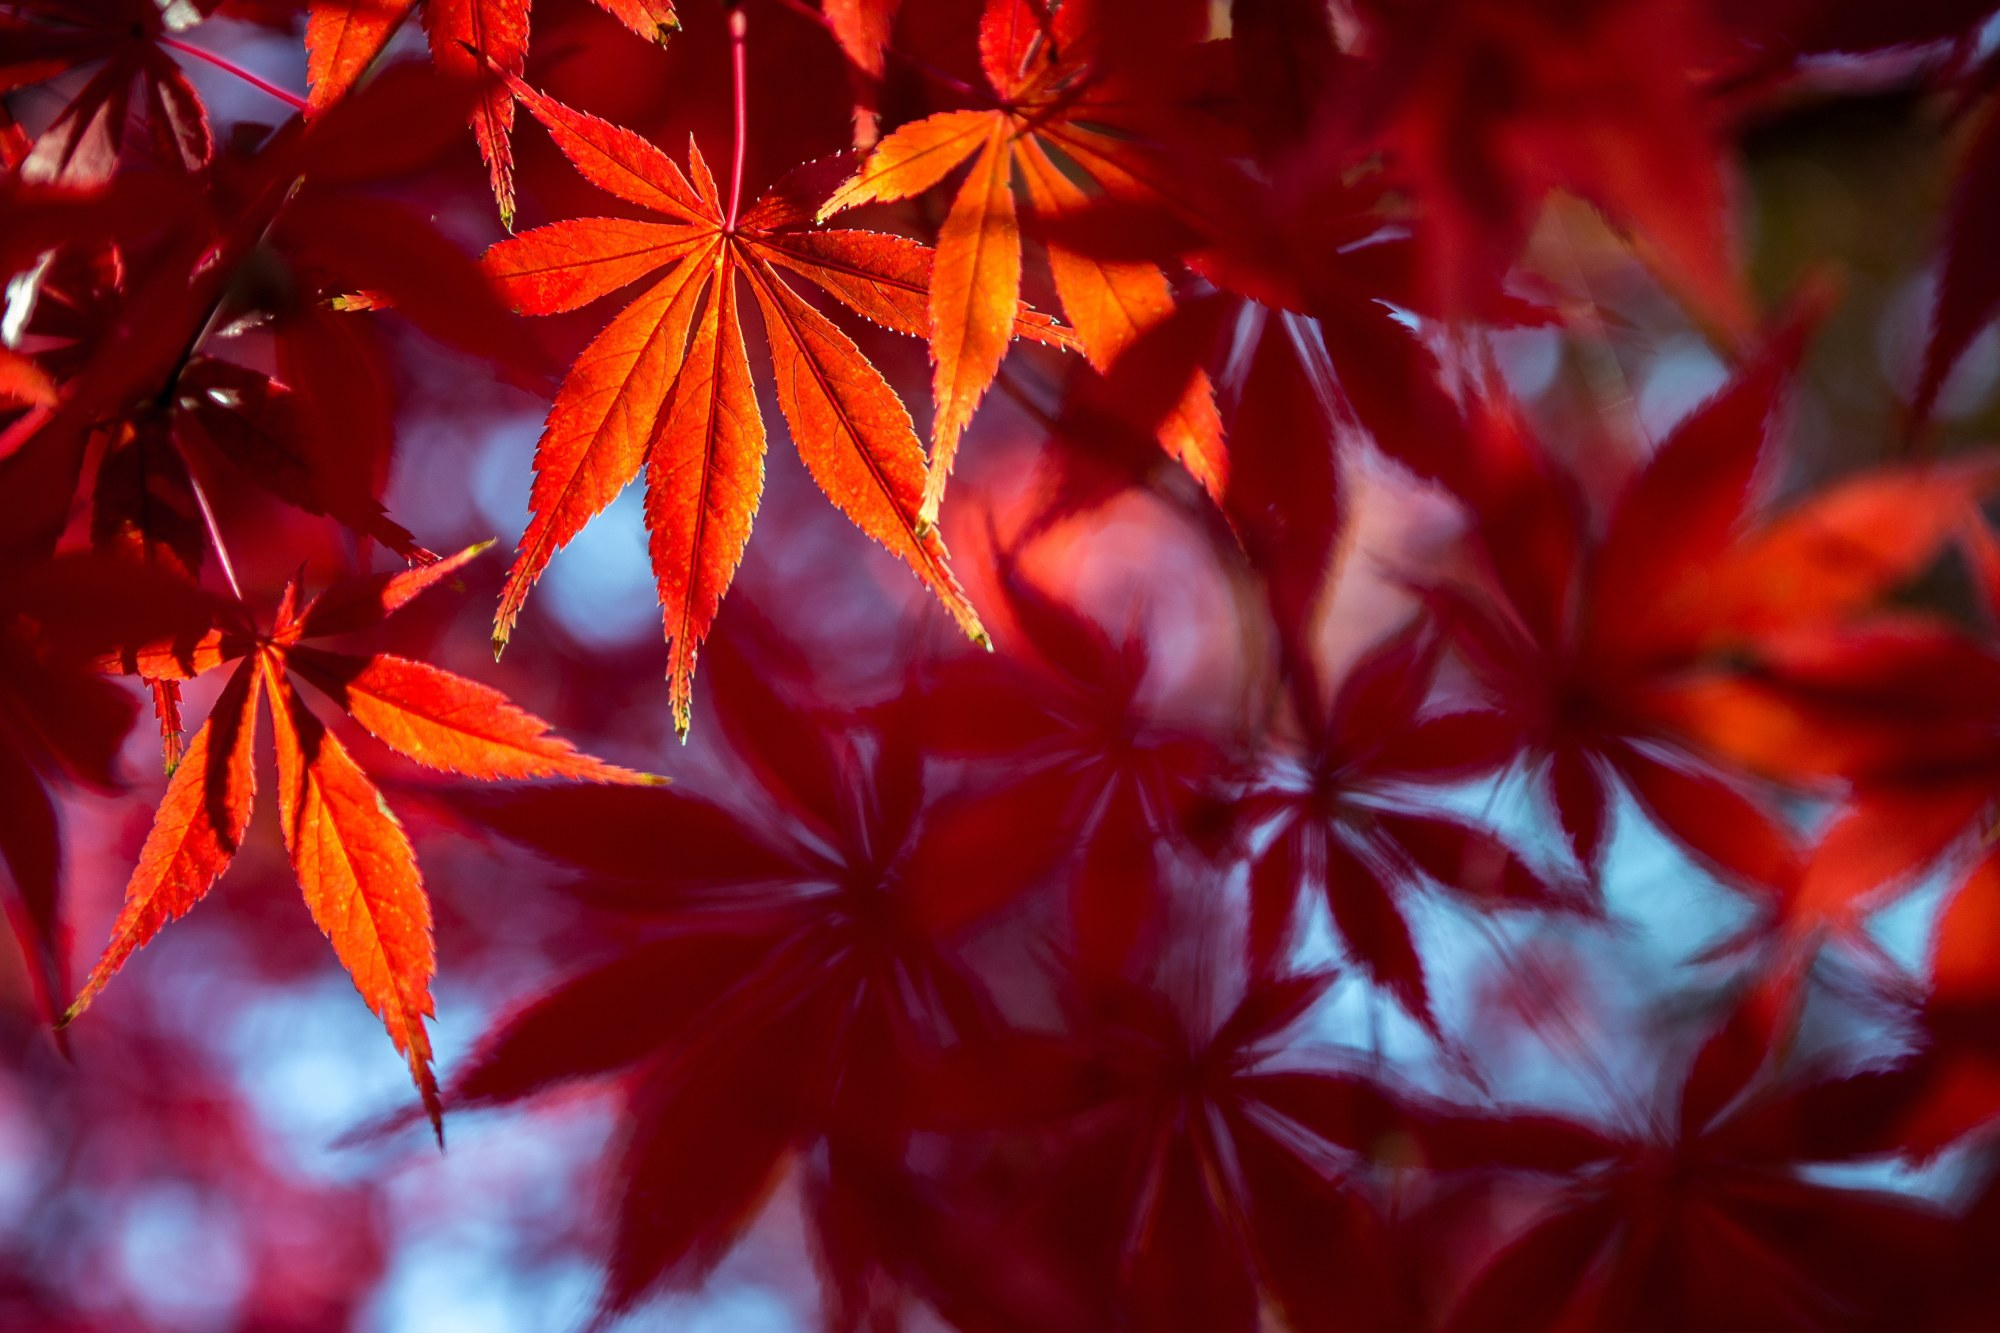 Autumn Leaves #8 example image 1